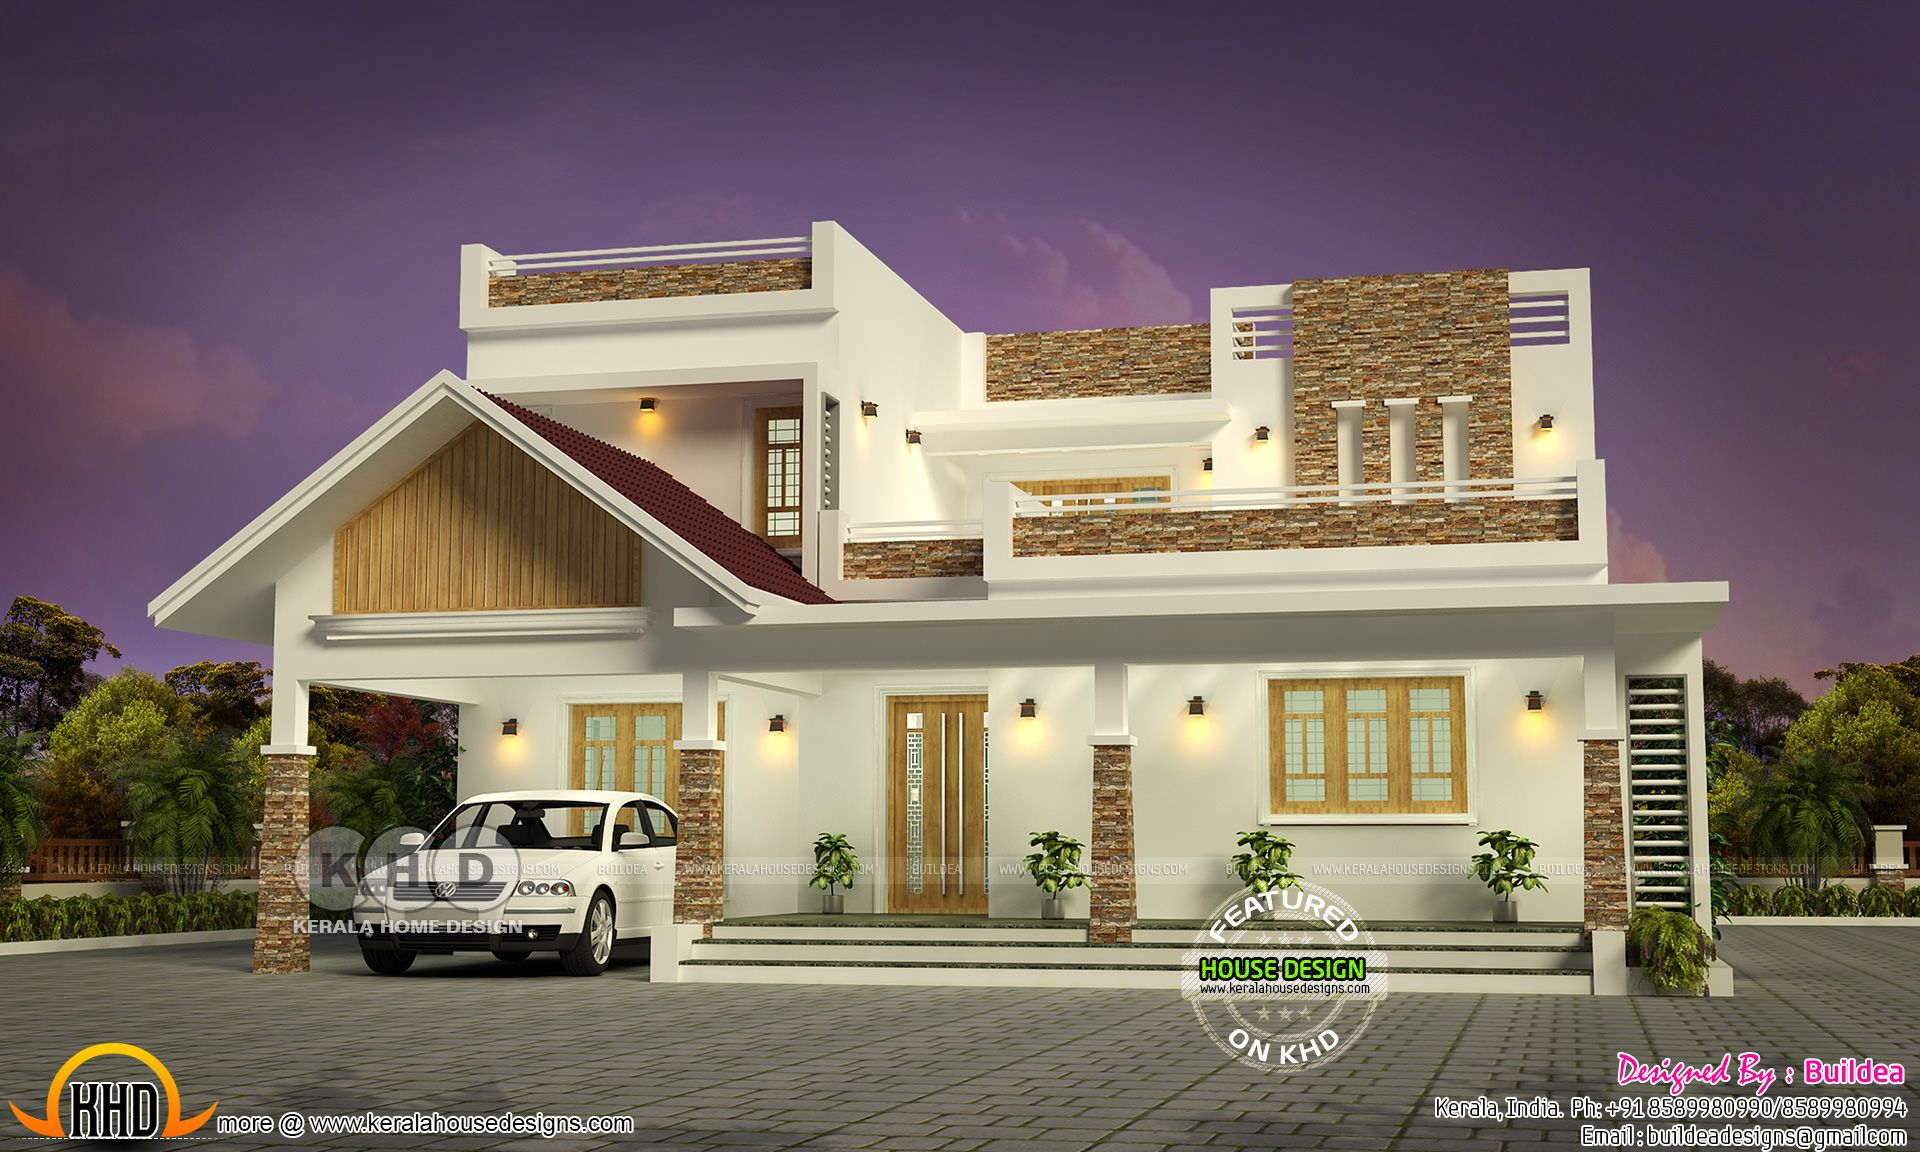 3392 Sq Ft 4 Bedroom Mixed Roof House Architecture Architecture House House Outside Design House